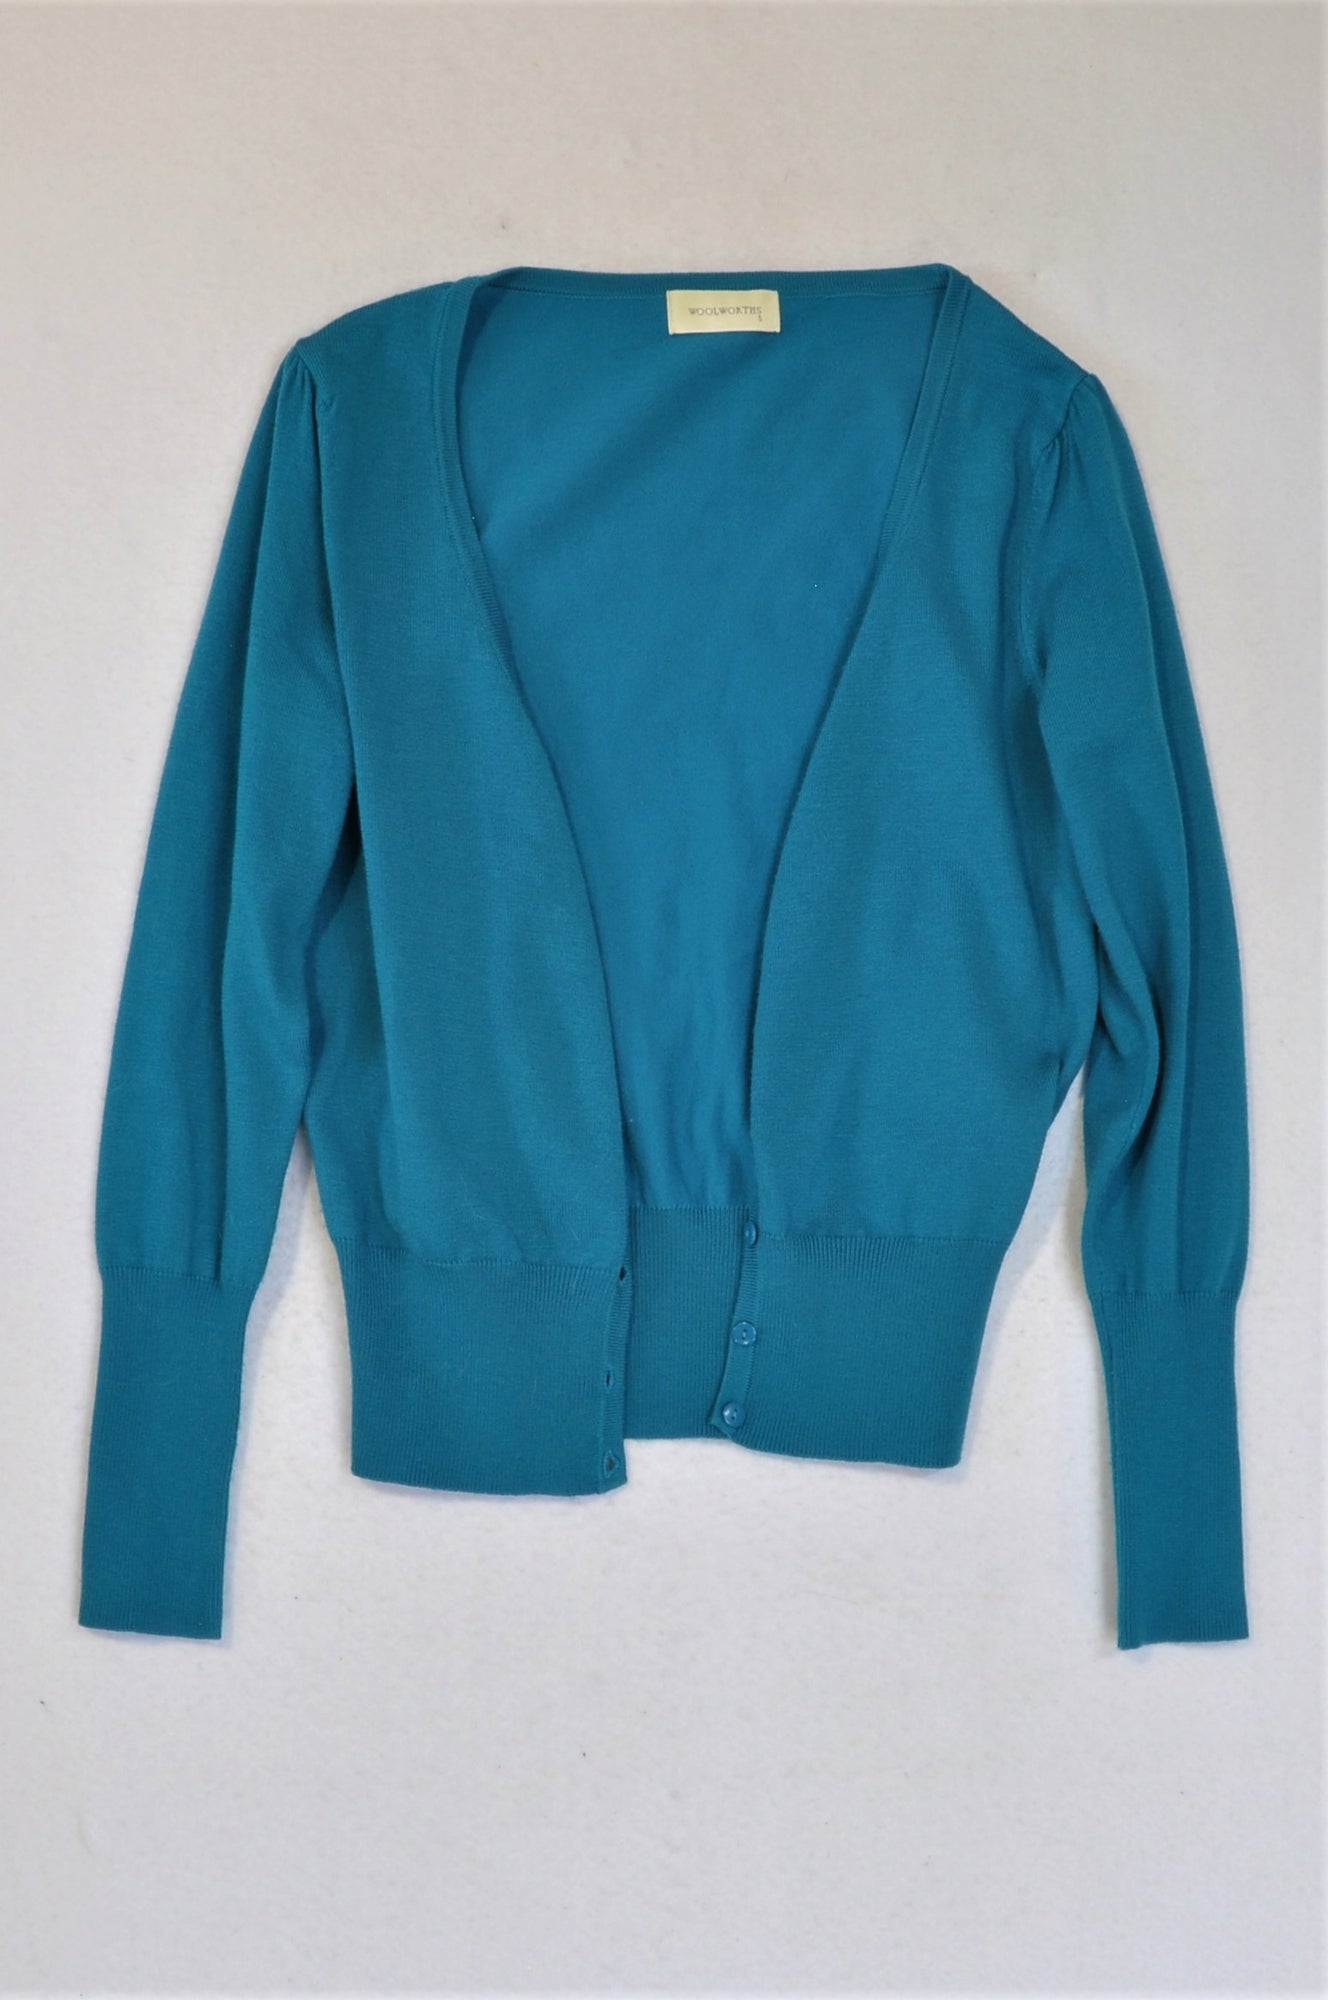 Woolworths Turquoise Cardigan Women Size S